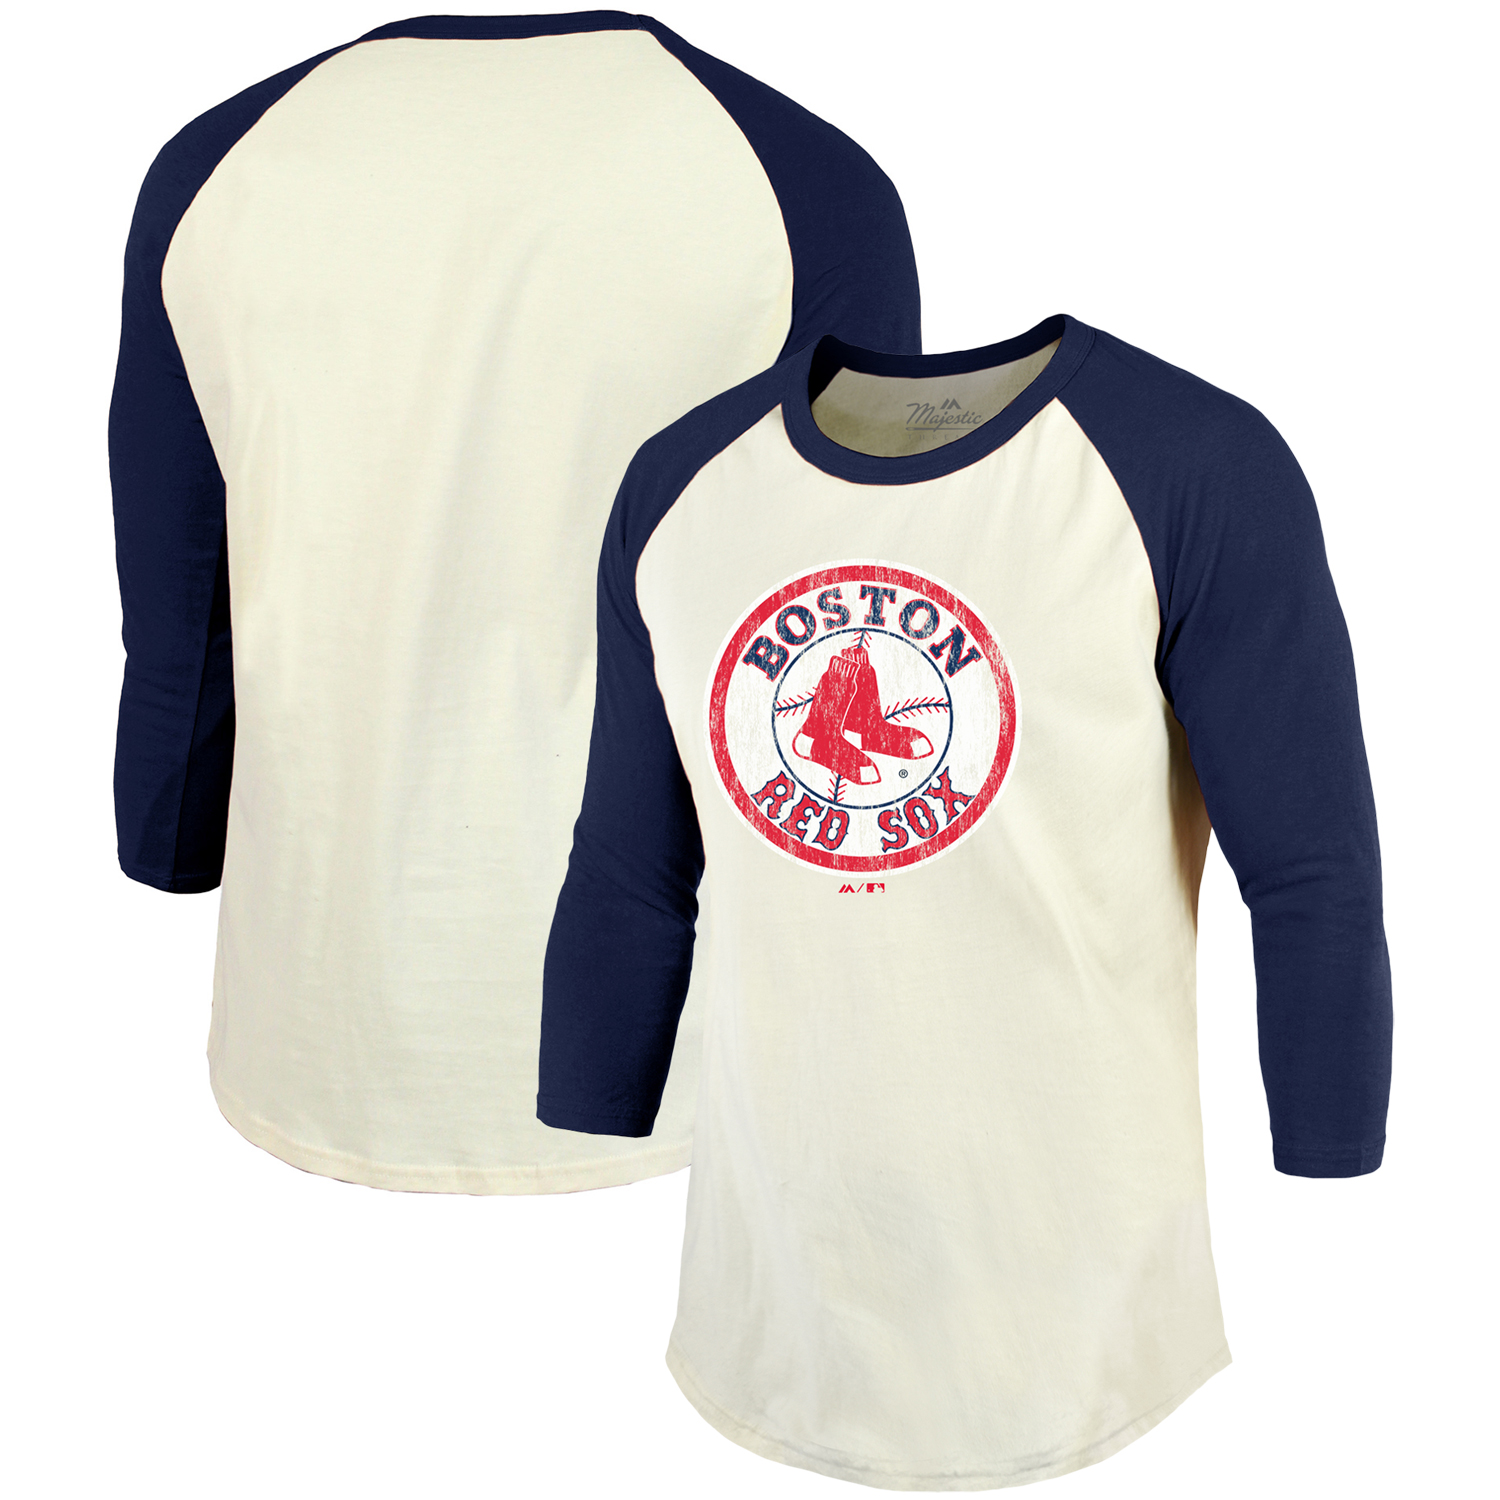 Boston Red Sox Majestic Threads Cooperstown Collection Raglan 3/4-Sleeve T-Shirt - Cream/Navy